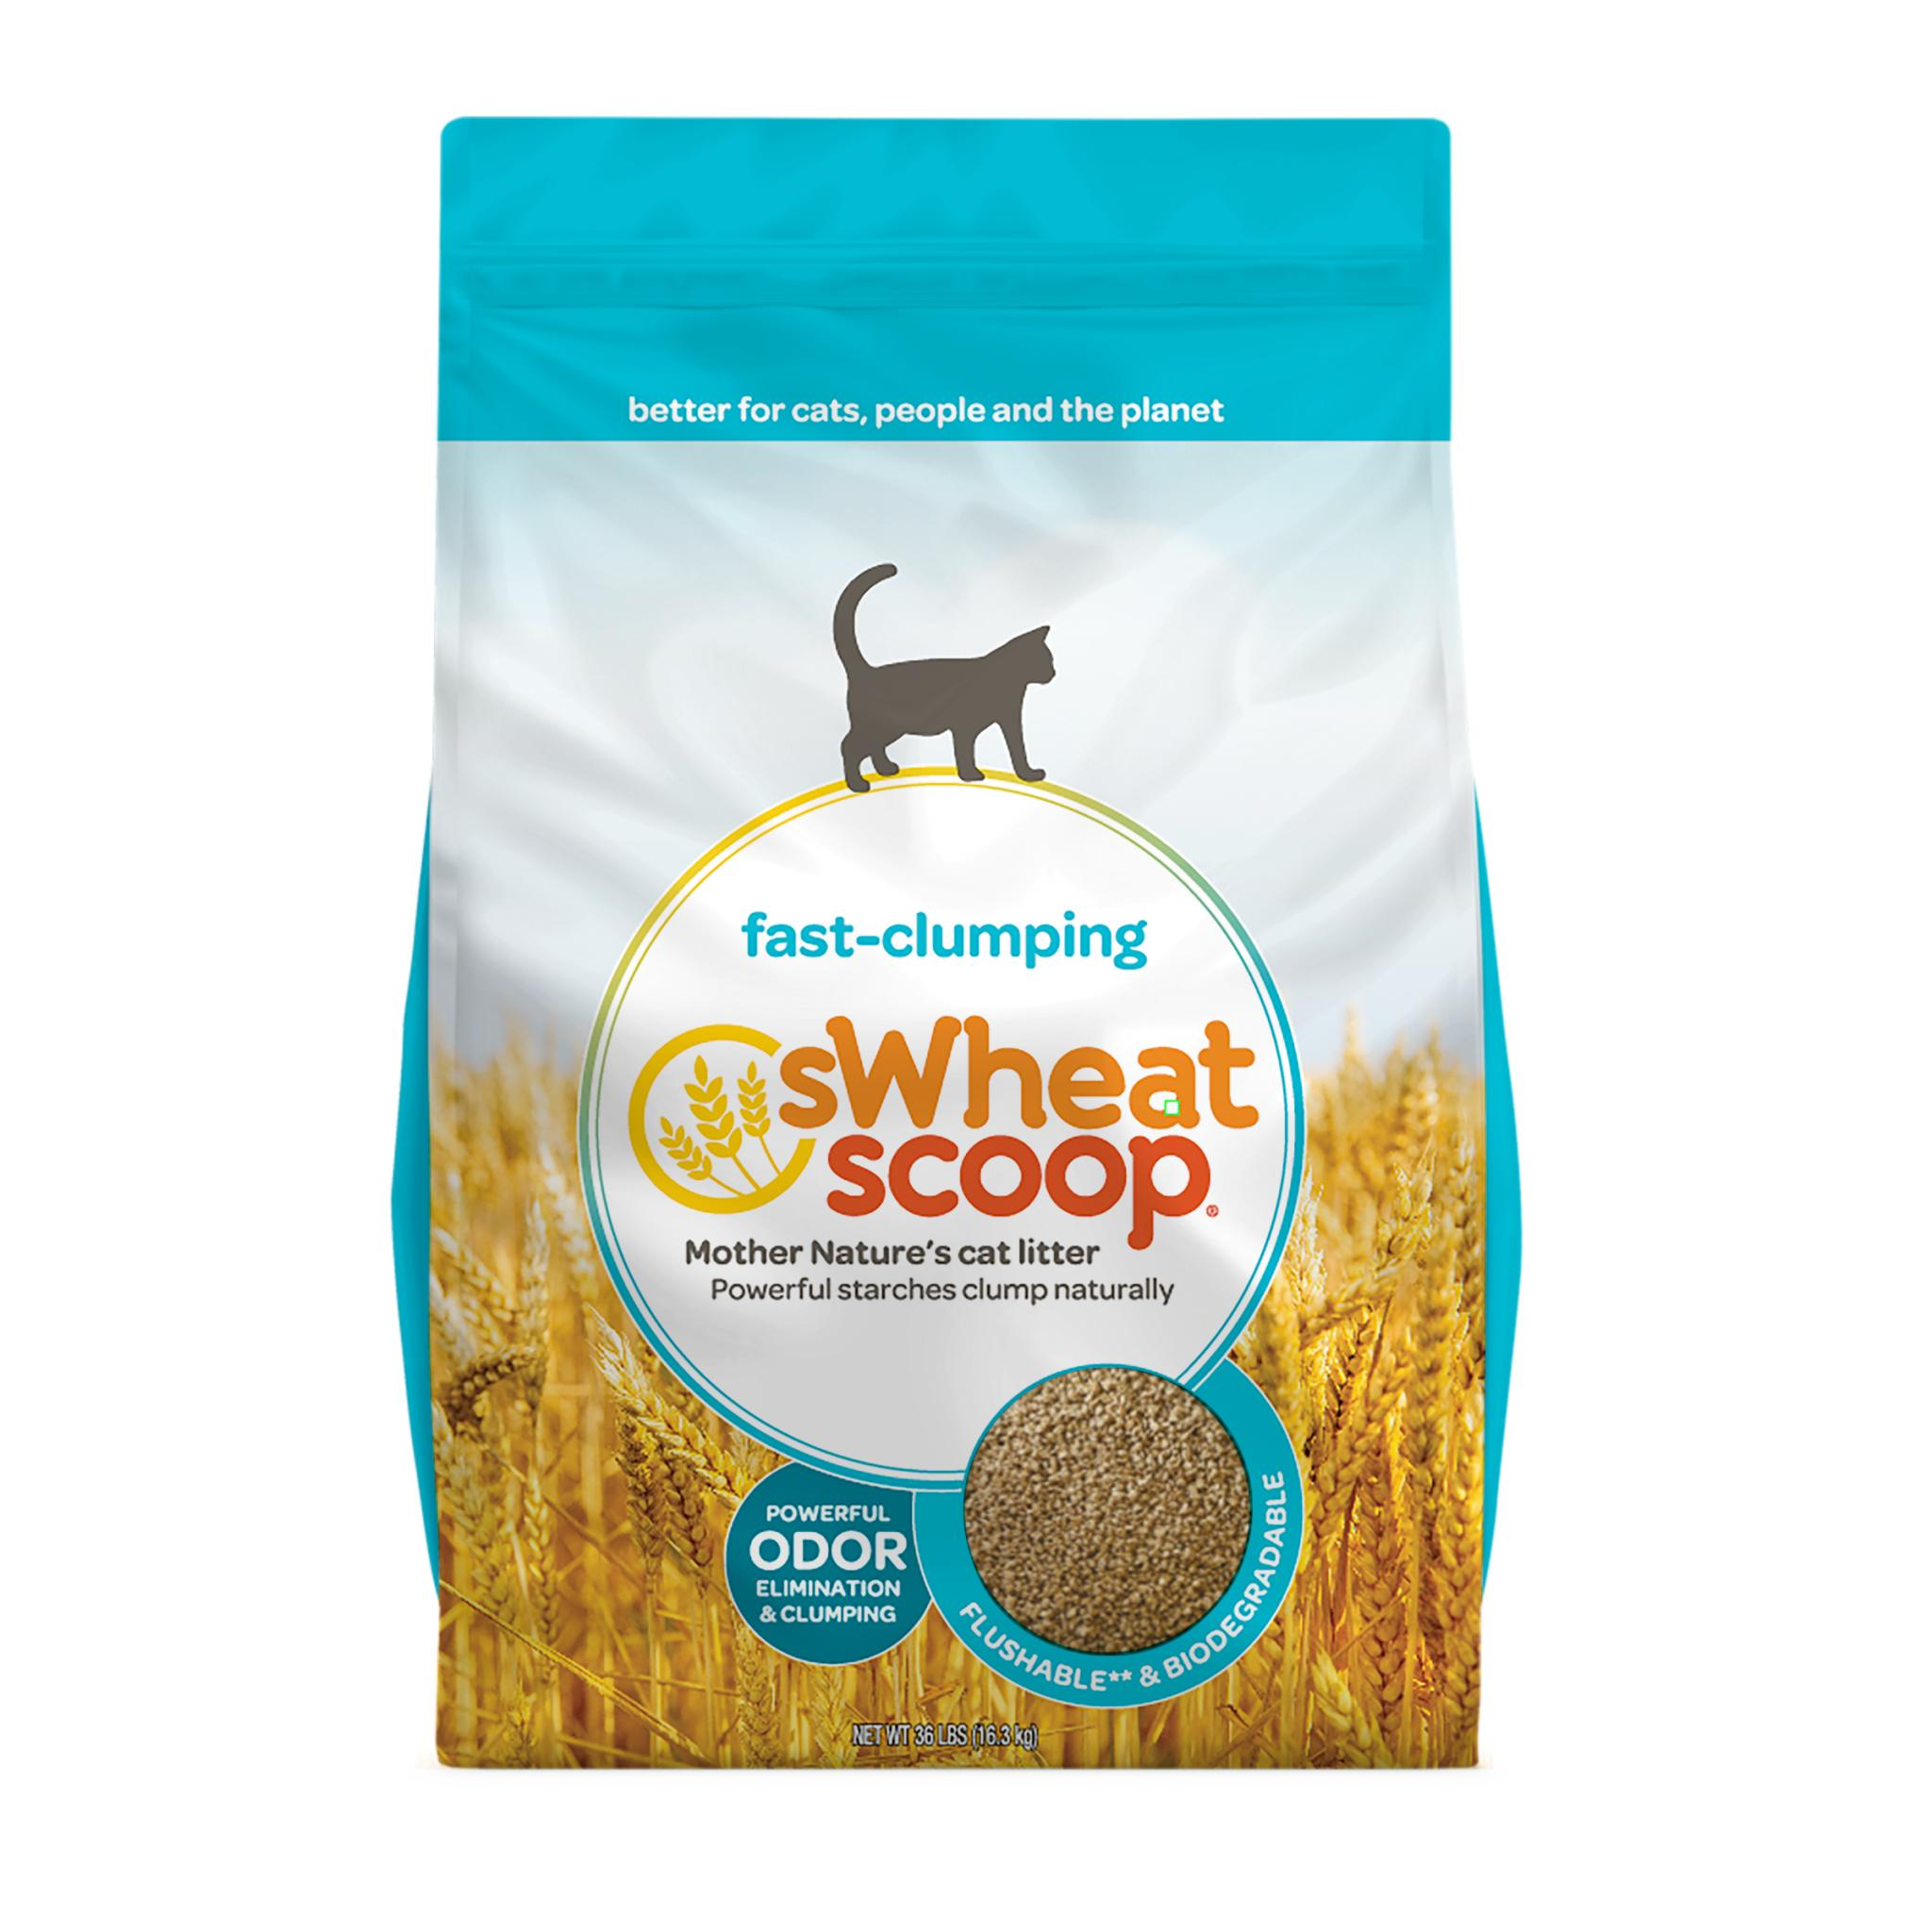 sWheat Scoop Natural Fast-Clumping Wheat Cat Litter, 36lb